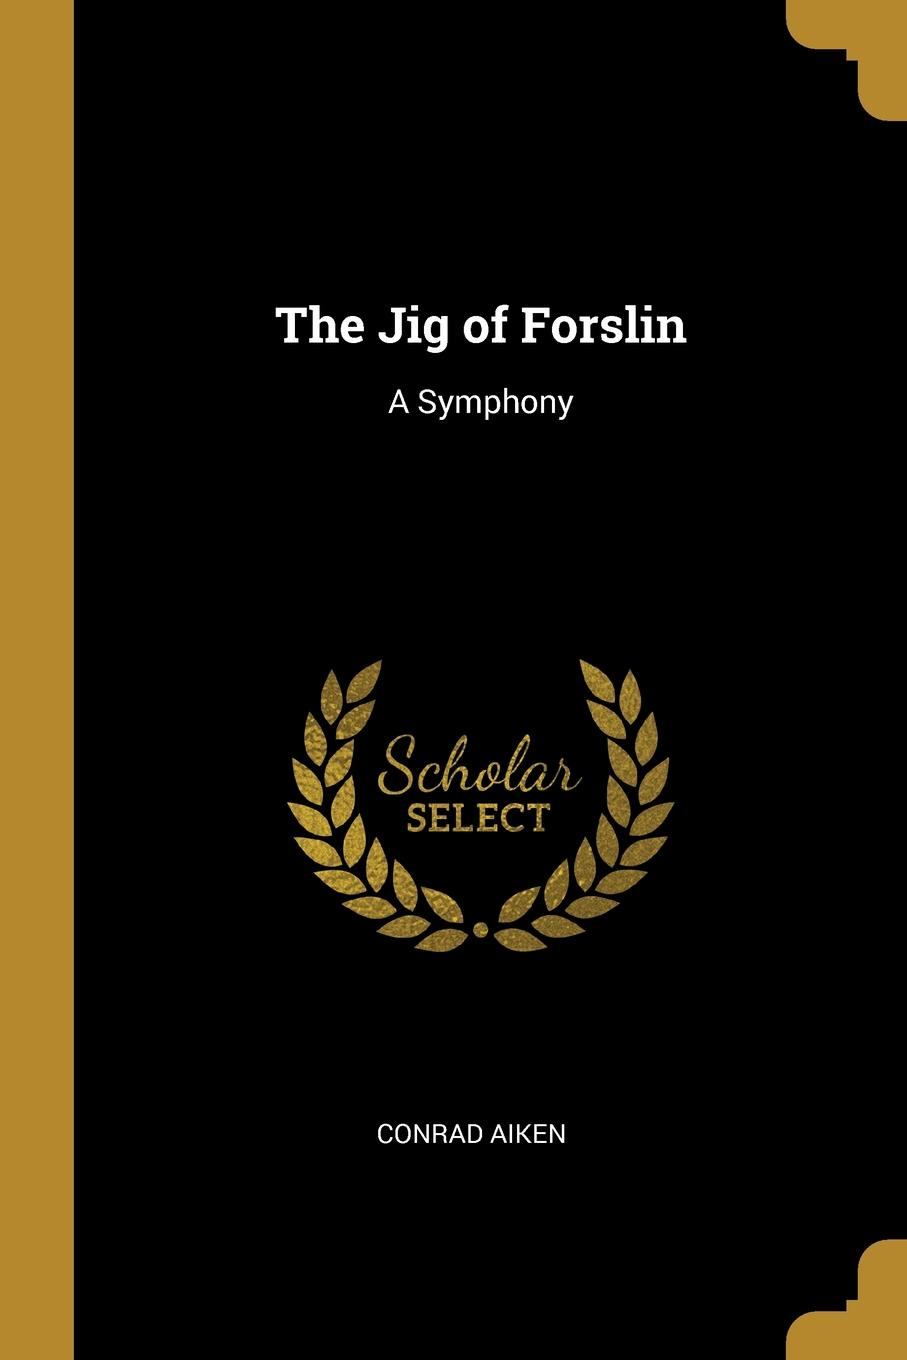 Conrad Aiken. The Jig of Forslin. A Symphony